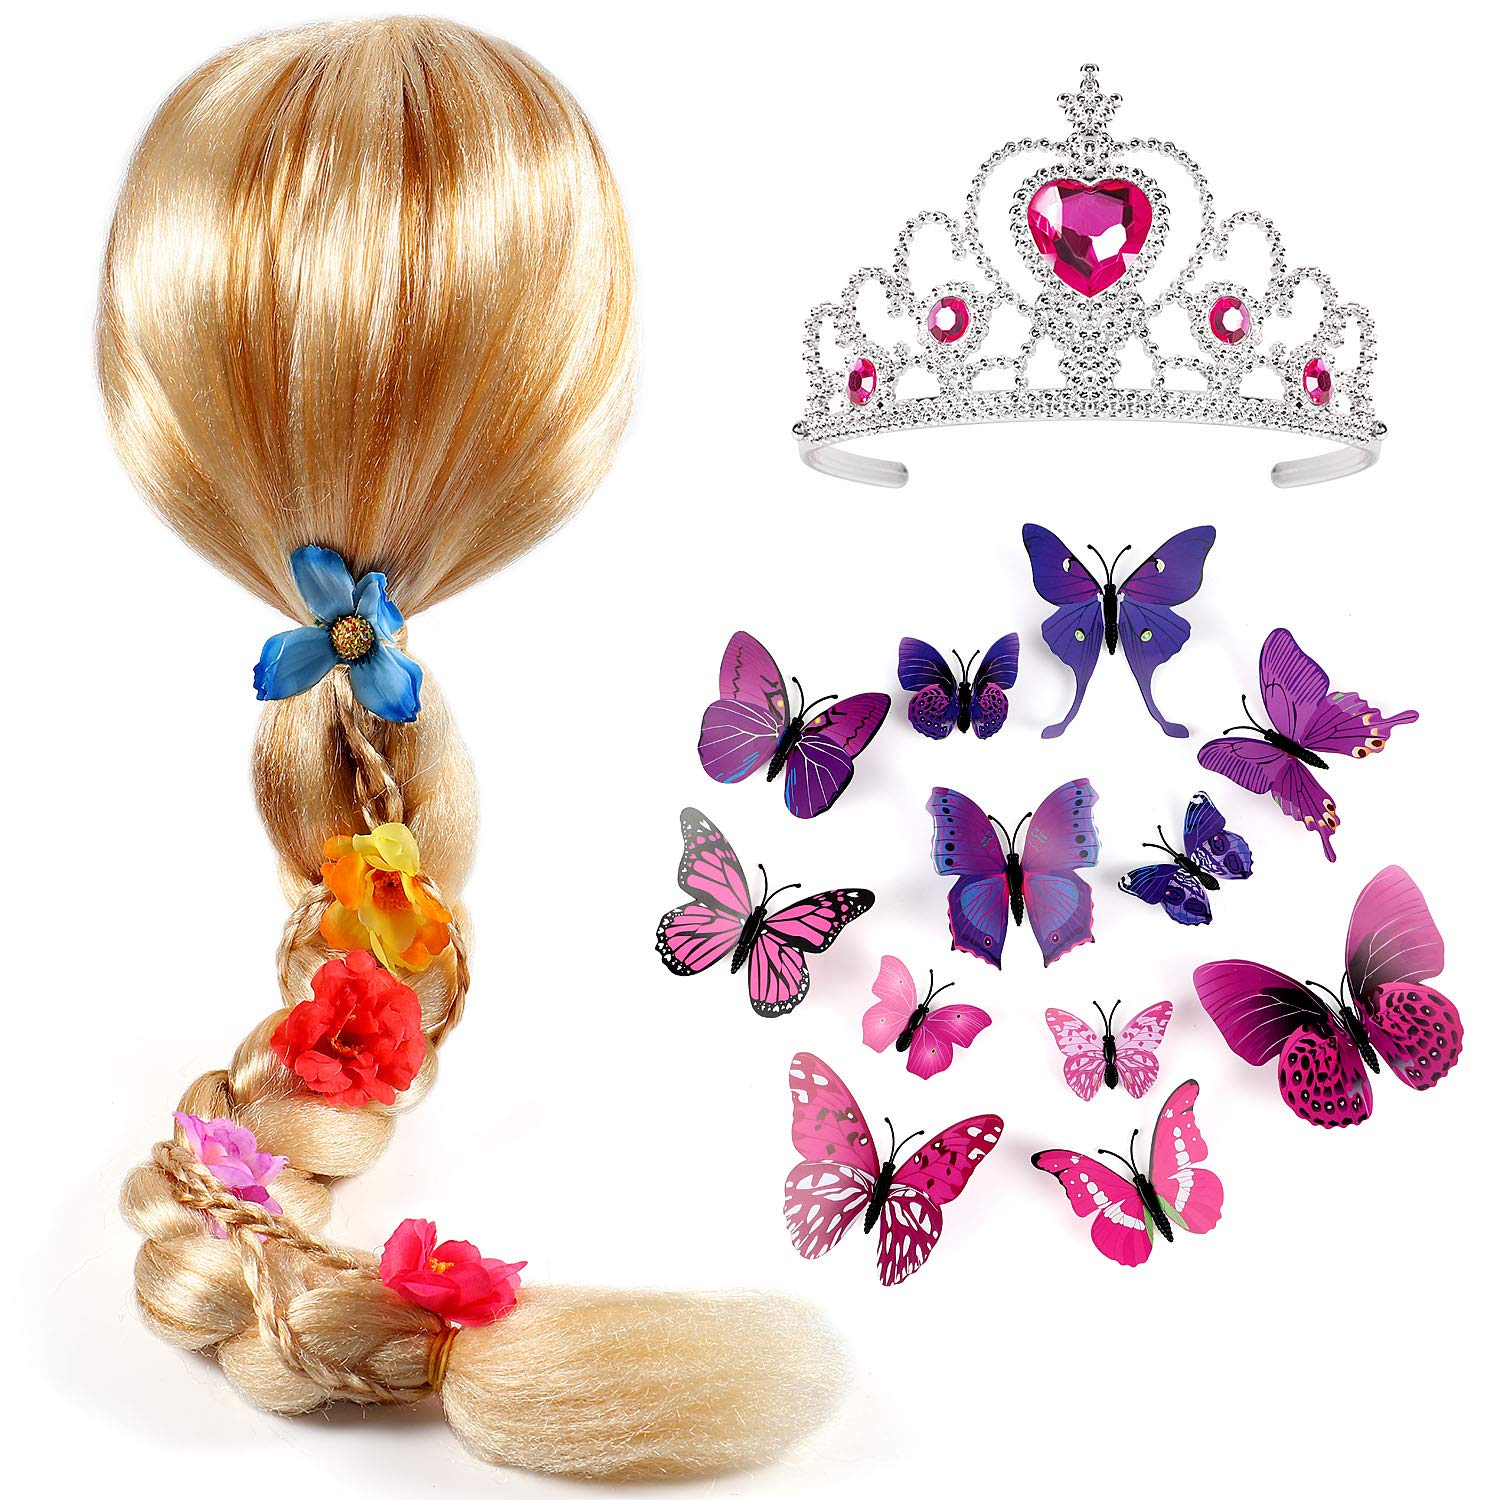 Tacobear Princess Rapunzel Wig for Girls with Princess Tiara and Butterfly Pin Princess Rapunzel Dress up Accessories for Girls Kids by Tacobear